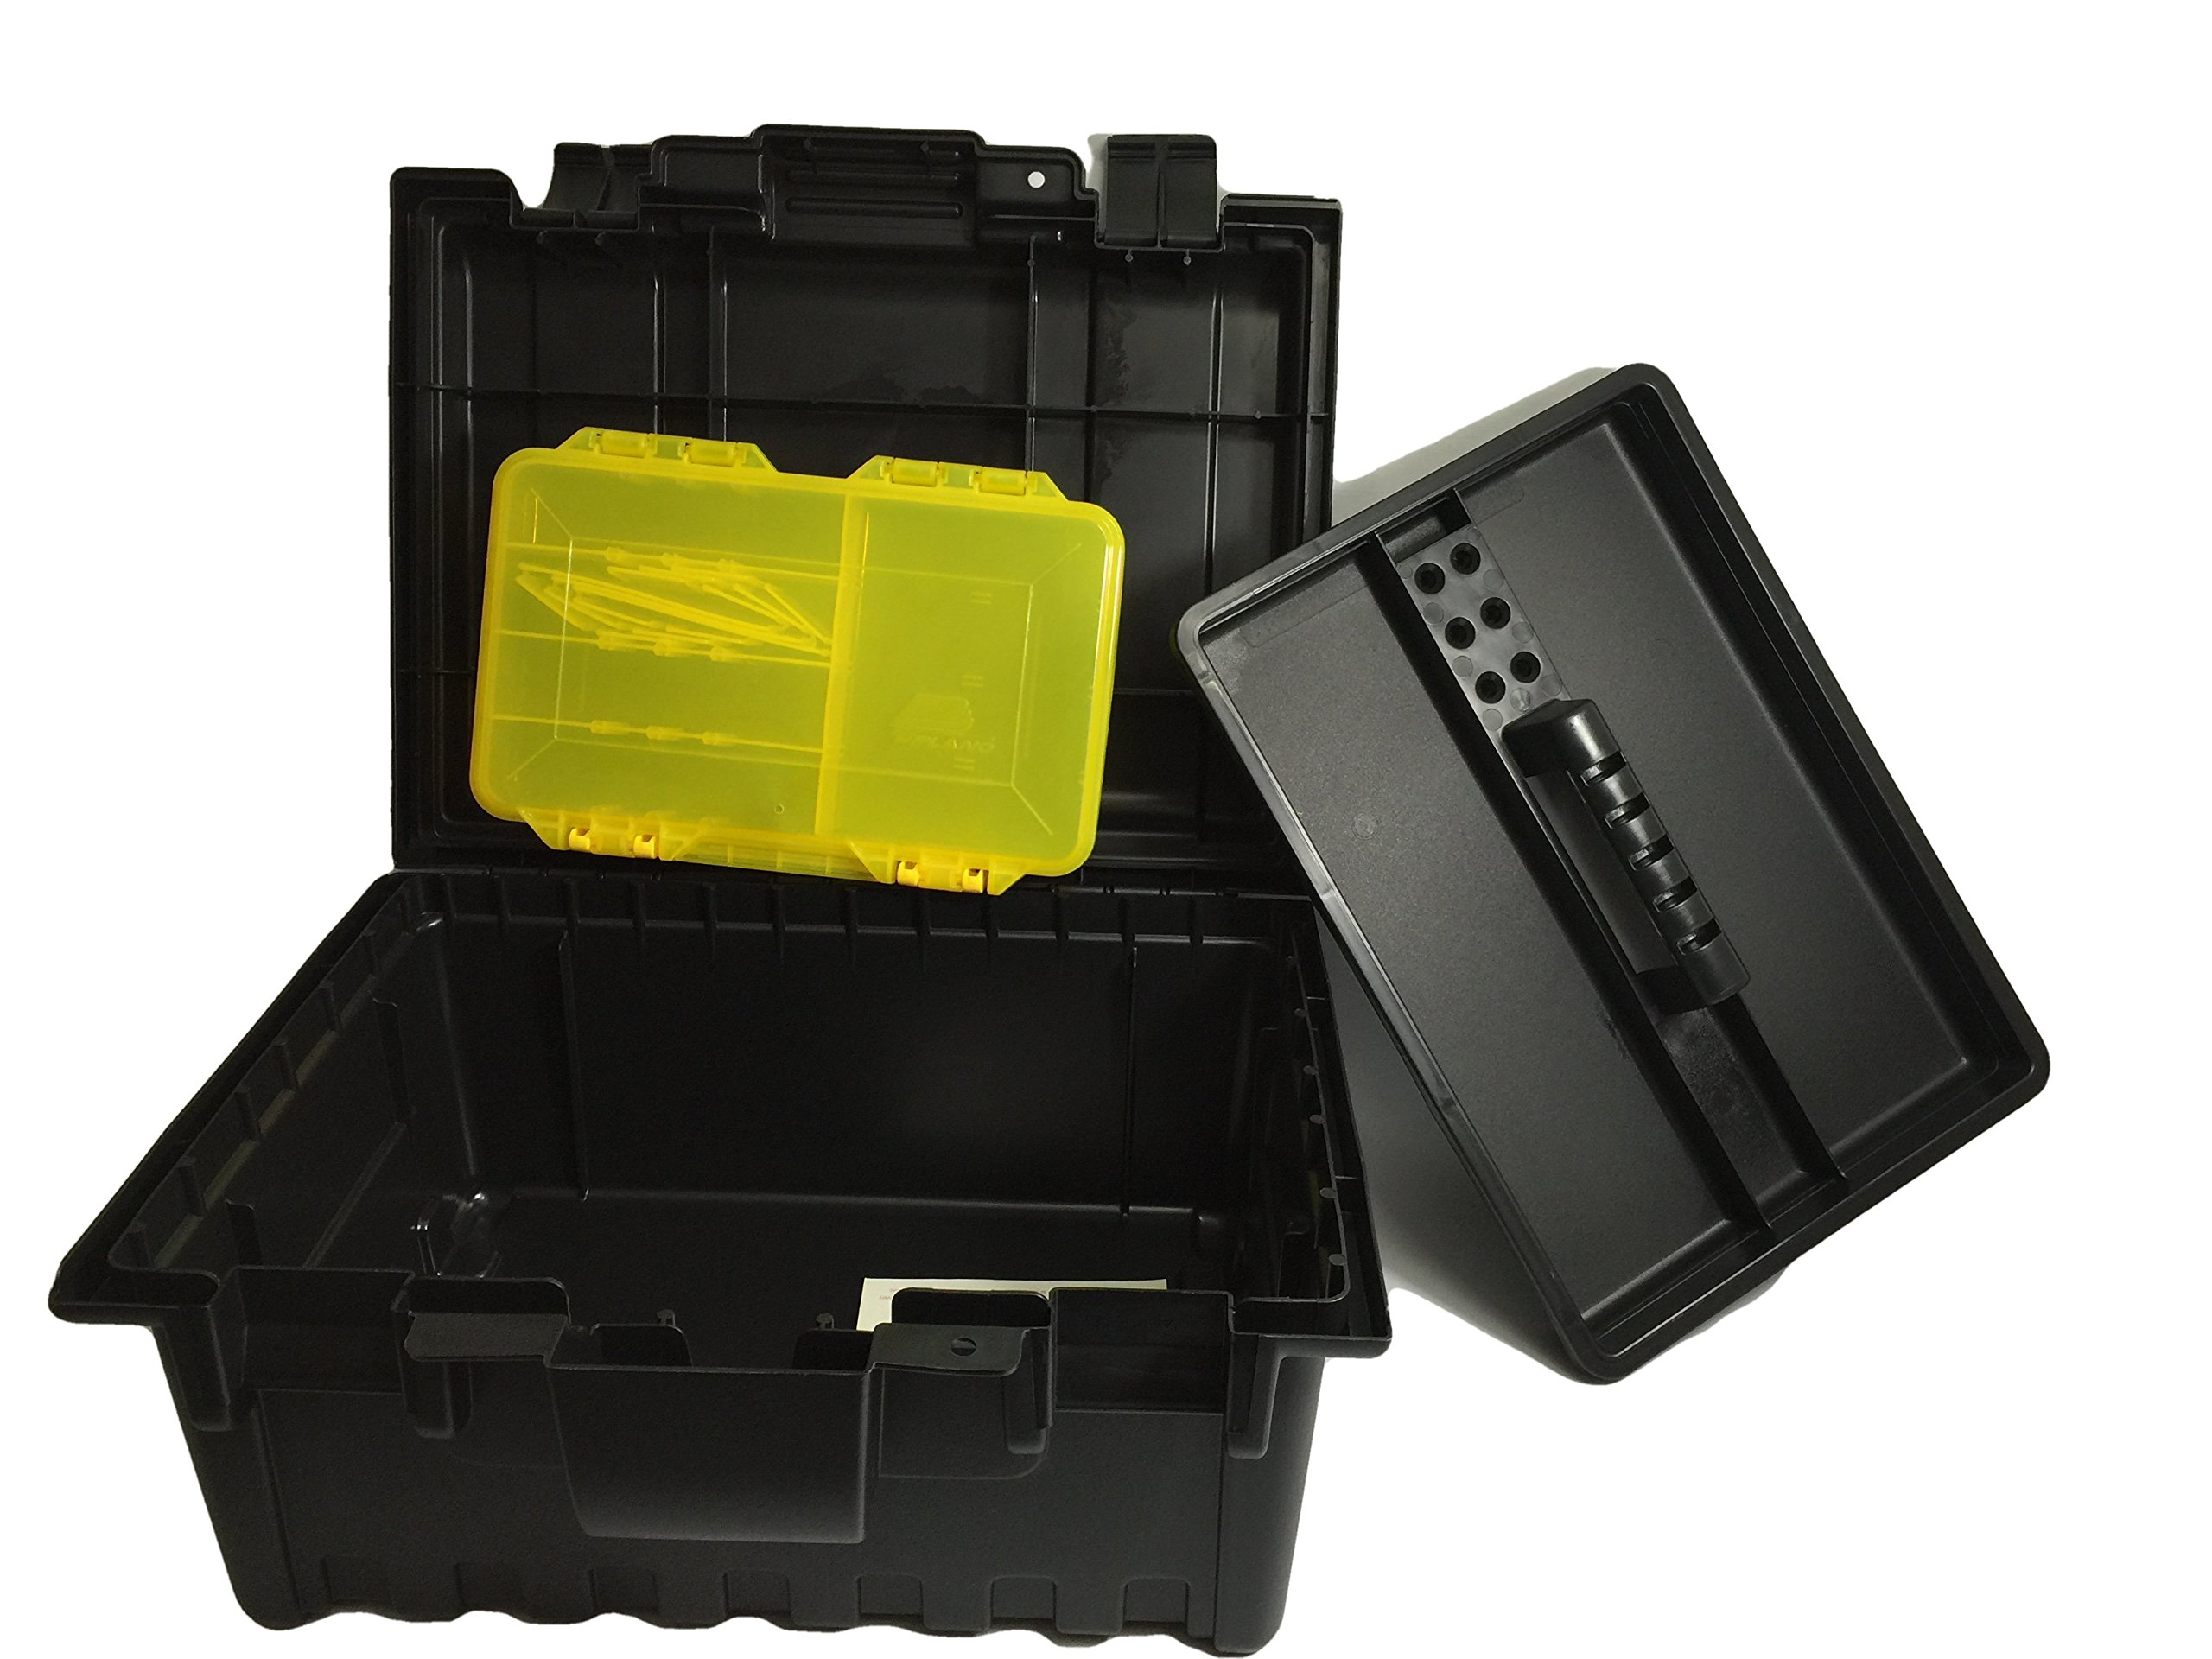 Plano 16 inch Power Tool Box with Tray and Caddy